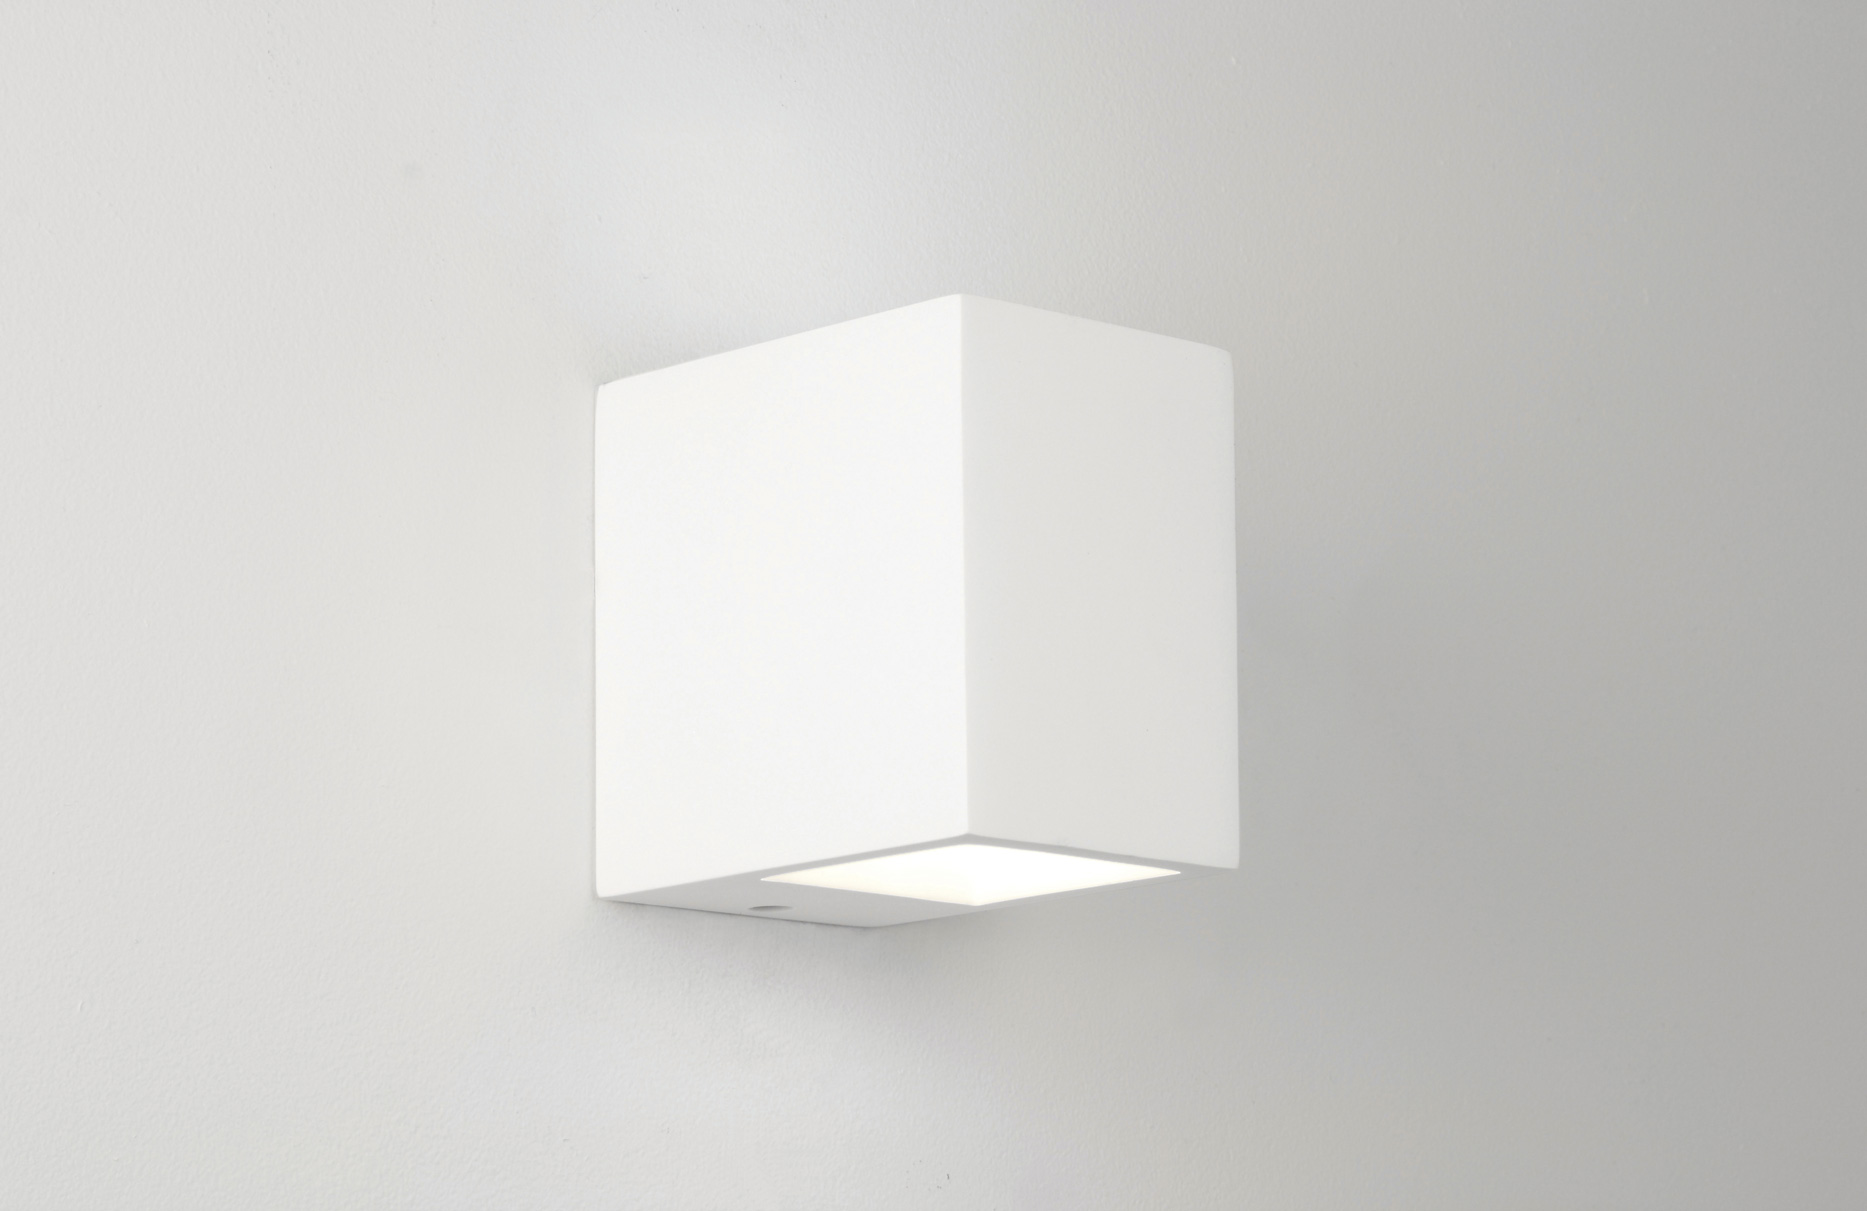 Dimmable Plaster Wall Lights : Astro Mosto 0813 rectangular dimmable wall light 40W G9 lamp IP20 white plaster Liminaires